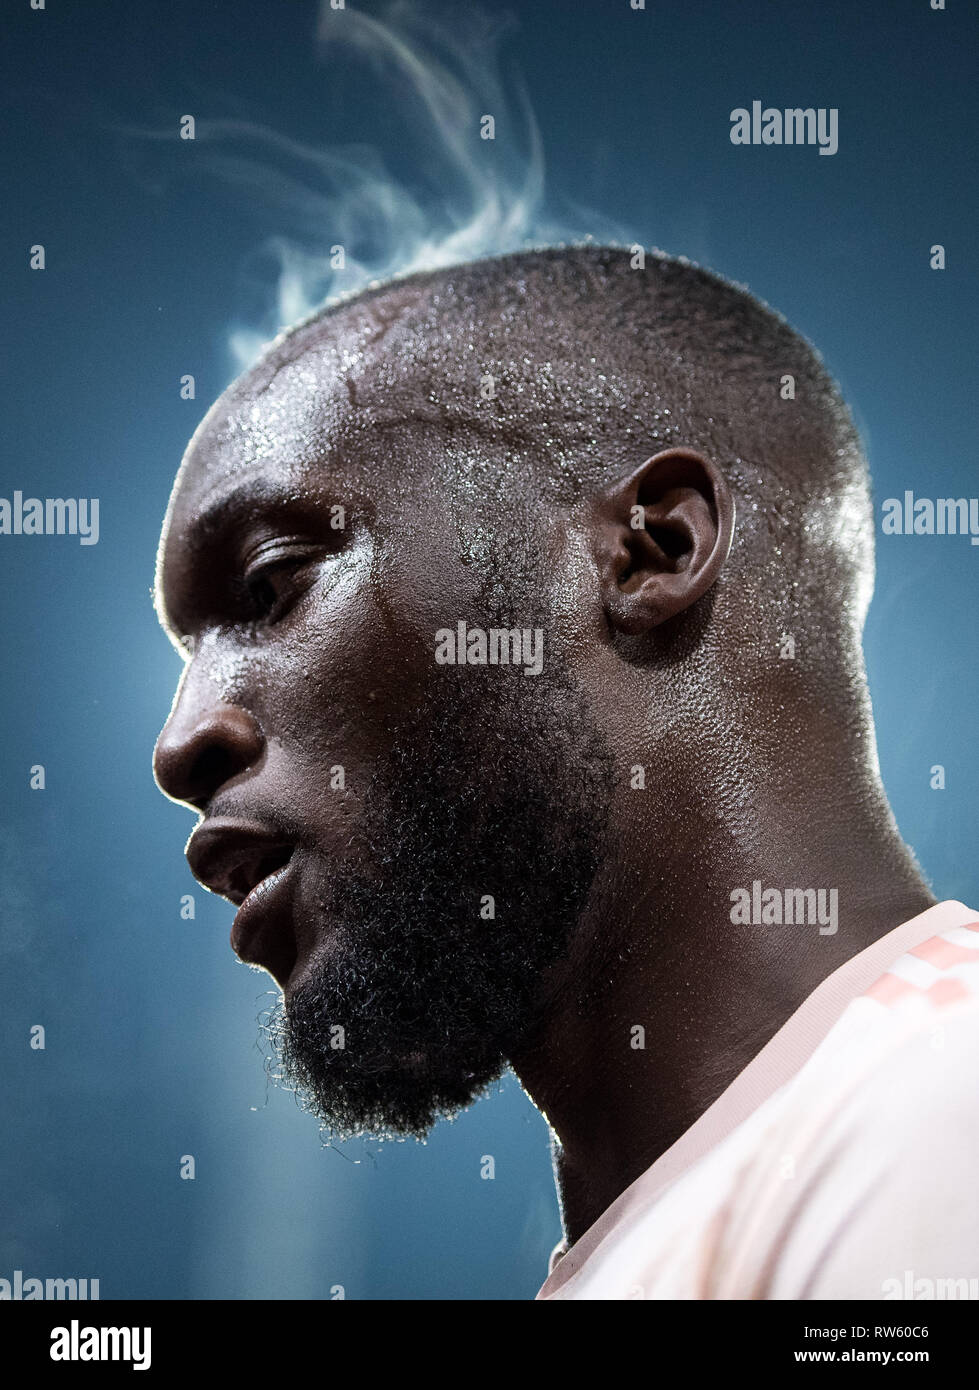 LONDON, ENGLAND - FEBRUARY 27: Romelu Lukaku of Manchester United looks on during the Premier League match between Crystal Palace and Manchester Unite - Stock Image